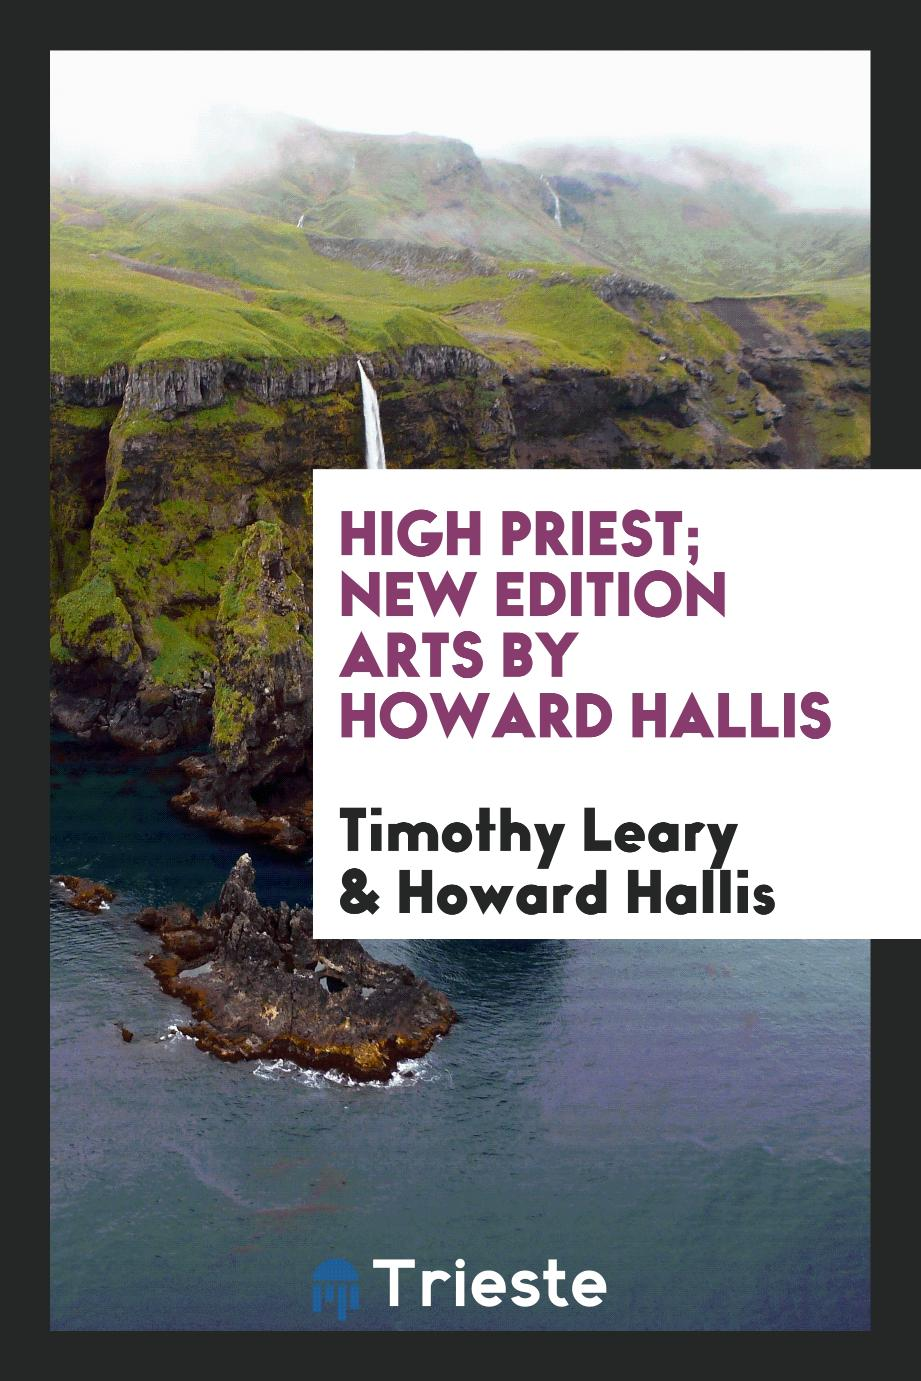 High Priest; New Edition Arts by Howard Hallis